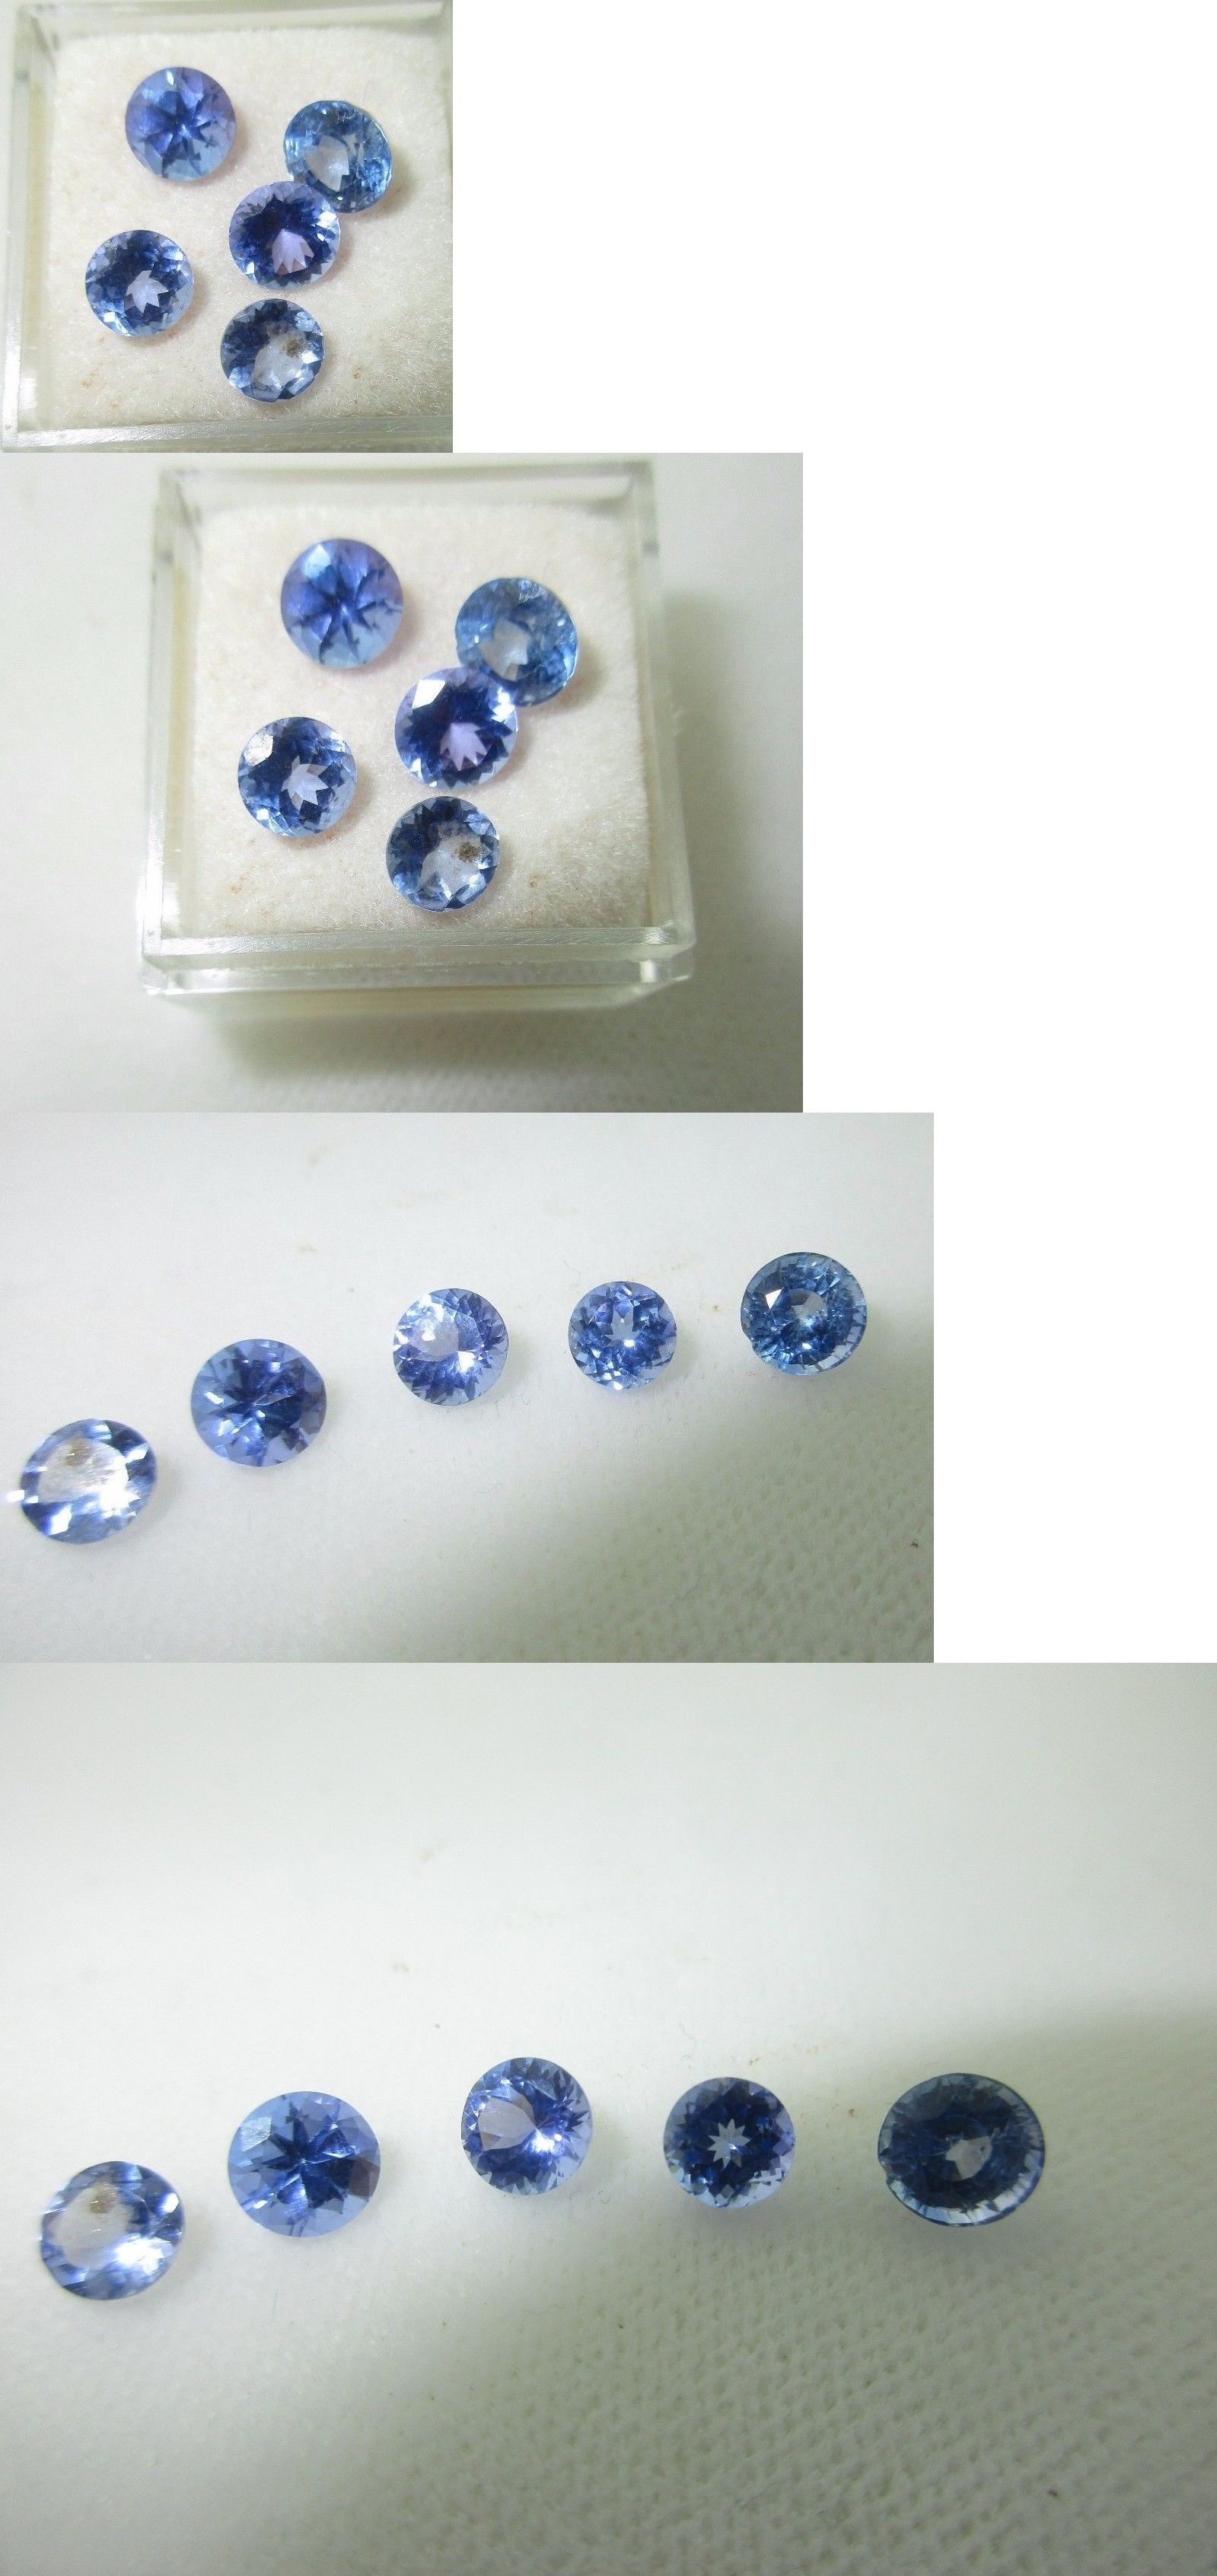 tanzanite zircon image natural loose rare rv